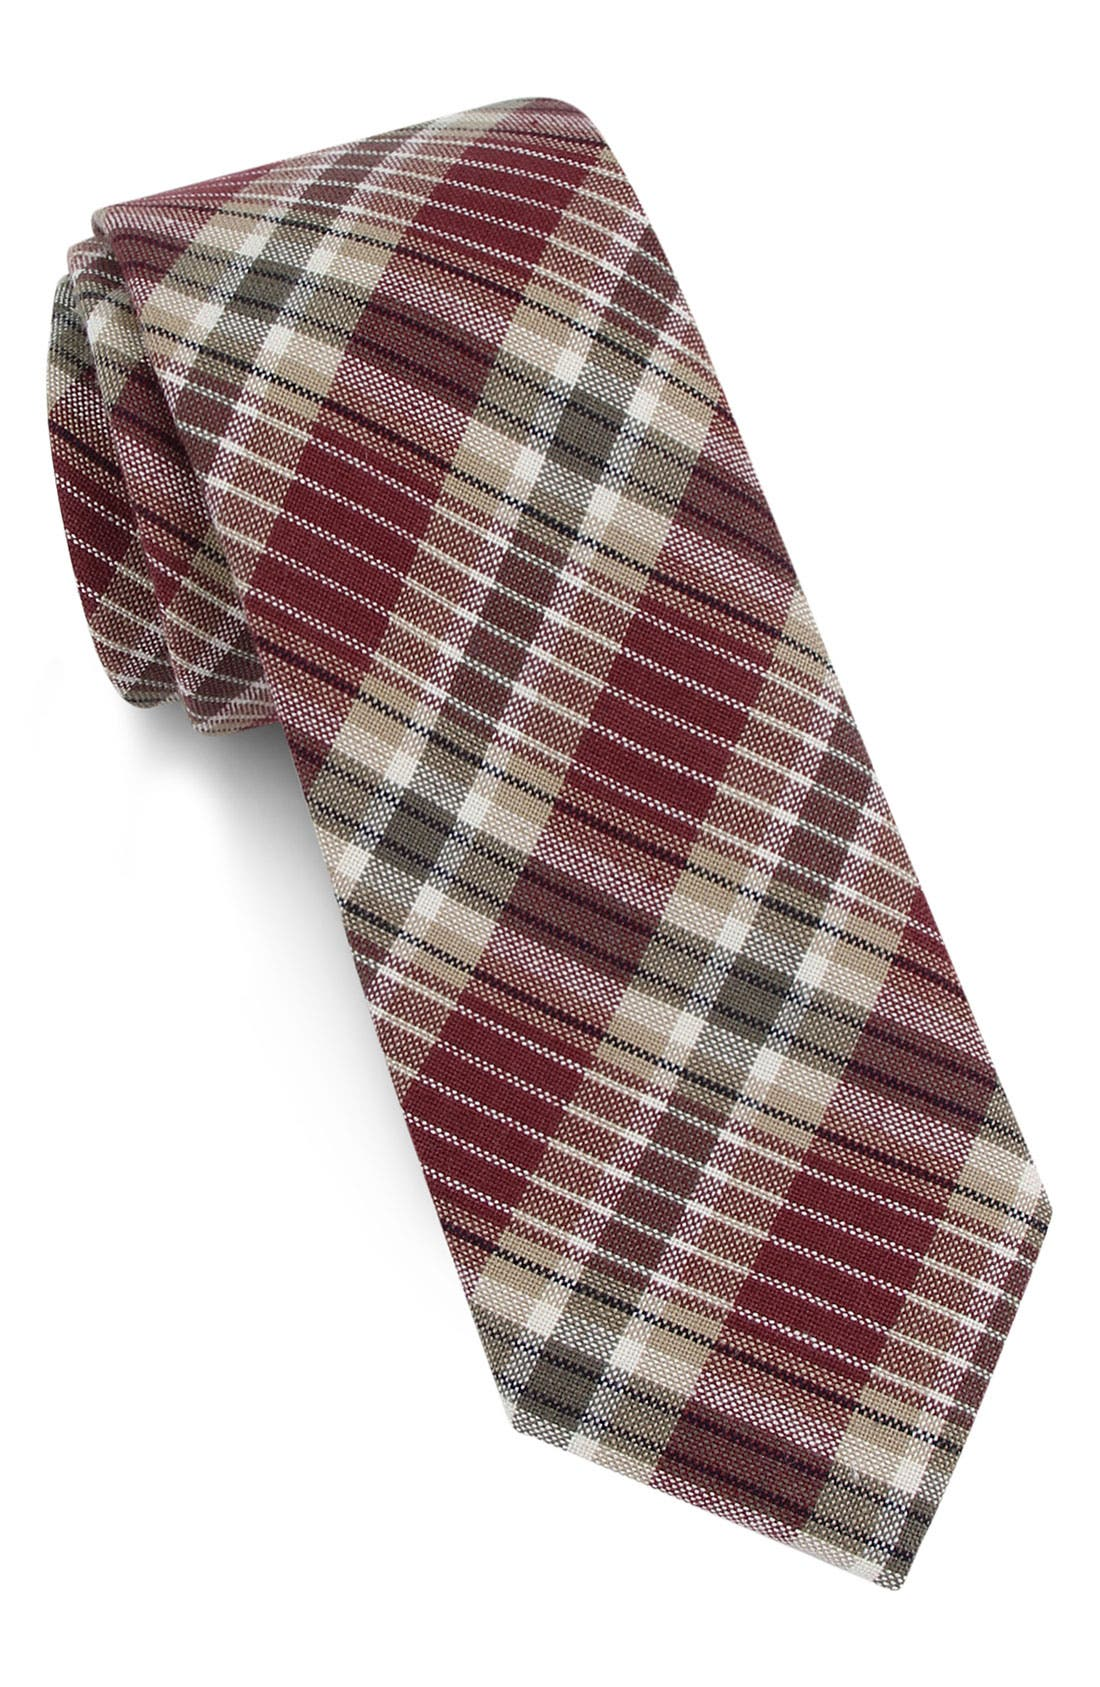 Main Image - 1901 Plaid Skinny Tie